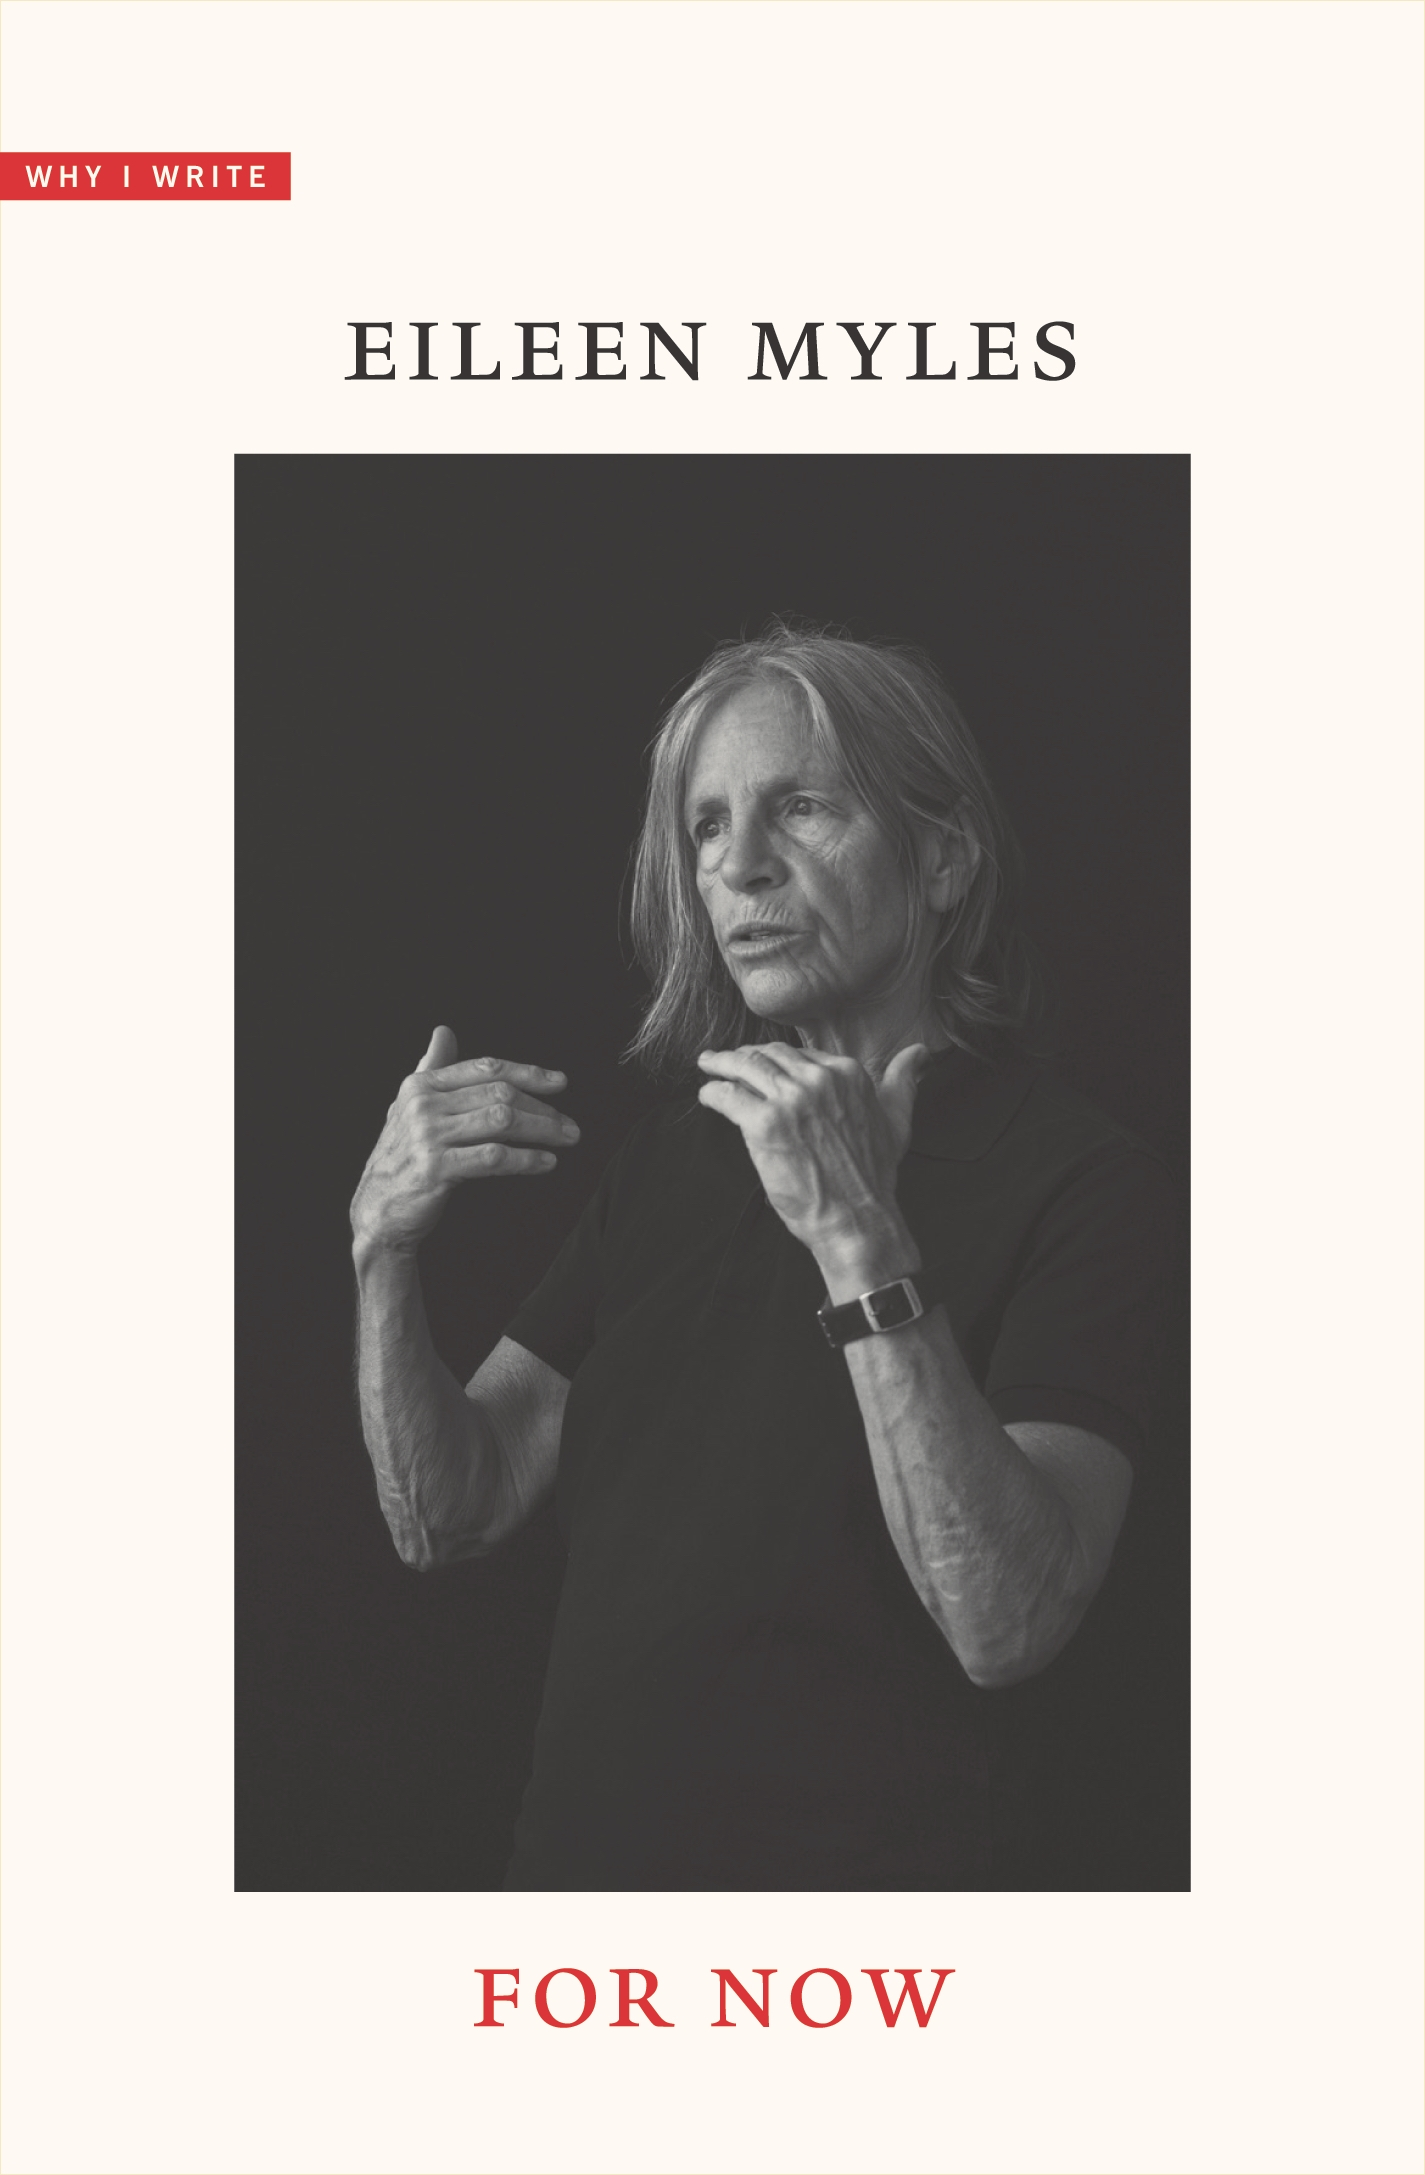 FOR NOW by Eileen Myles Launches September 22, 2020